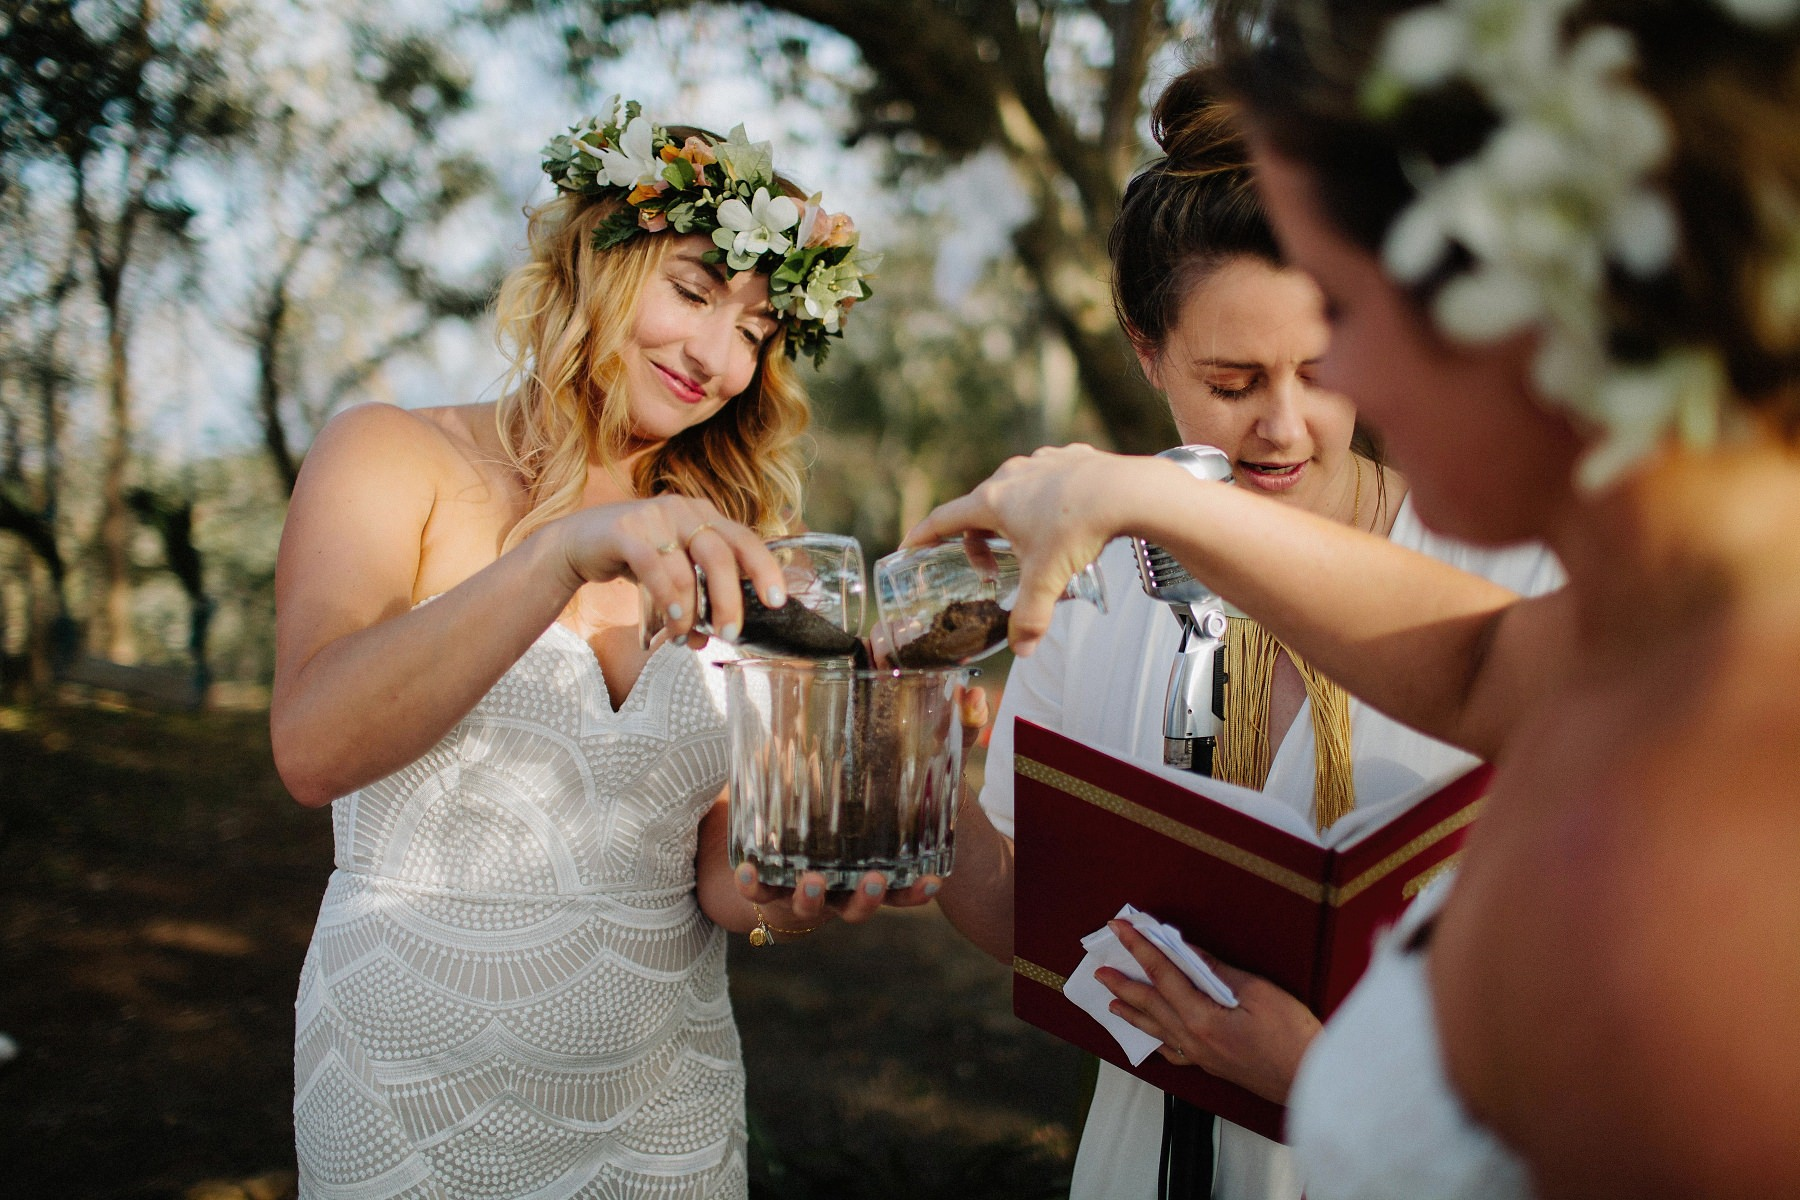 Brides getting married in Costa Rica